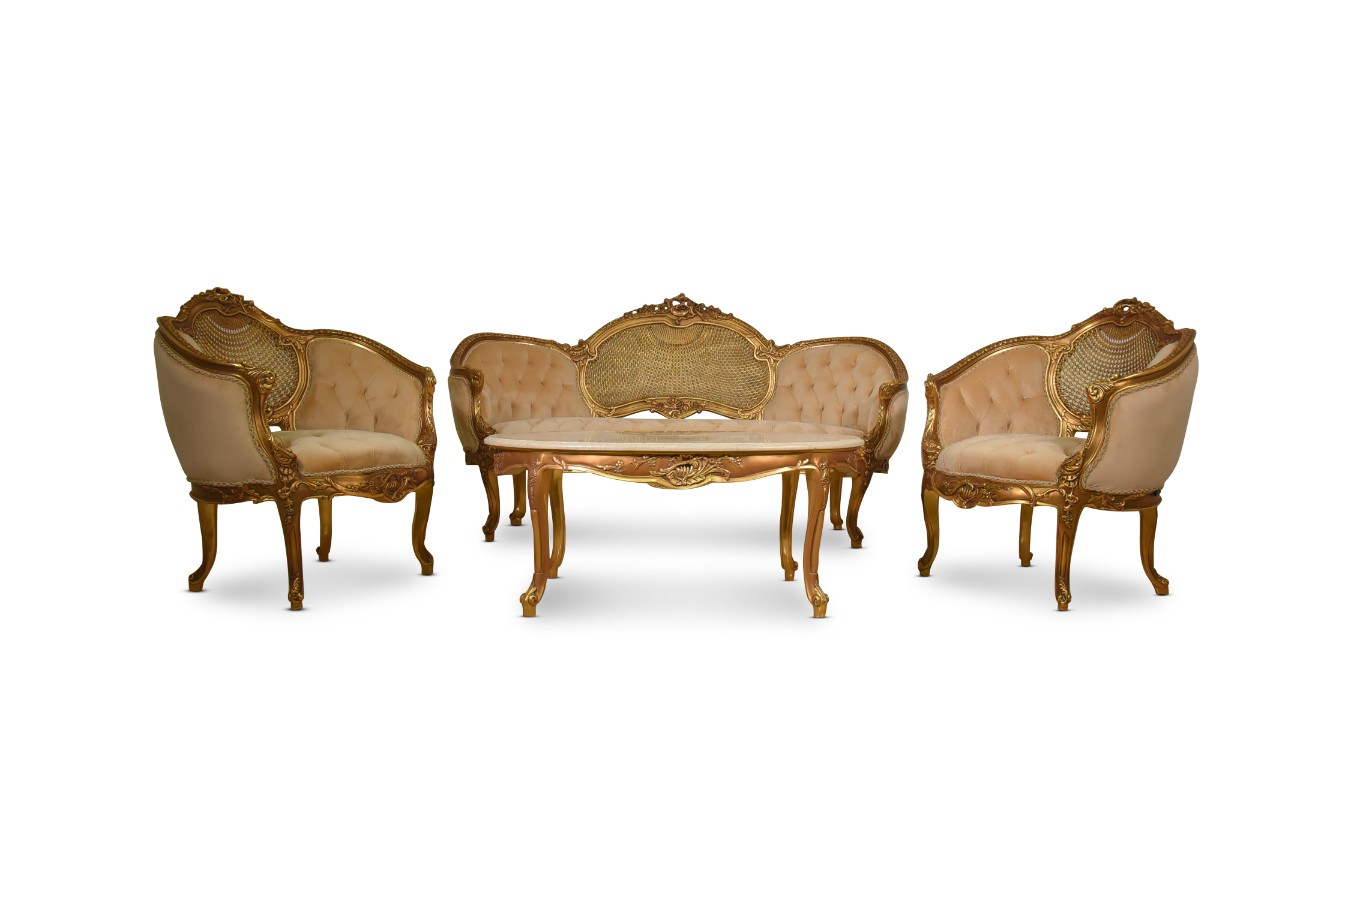 Giltwood Living Room Set